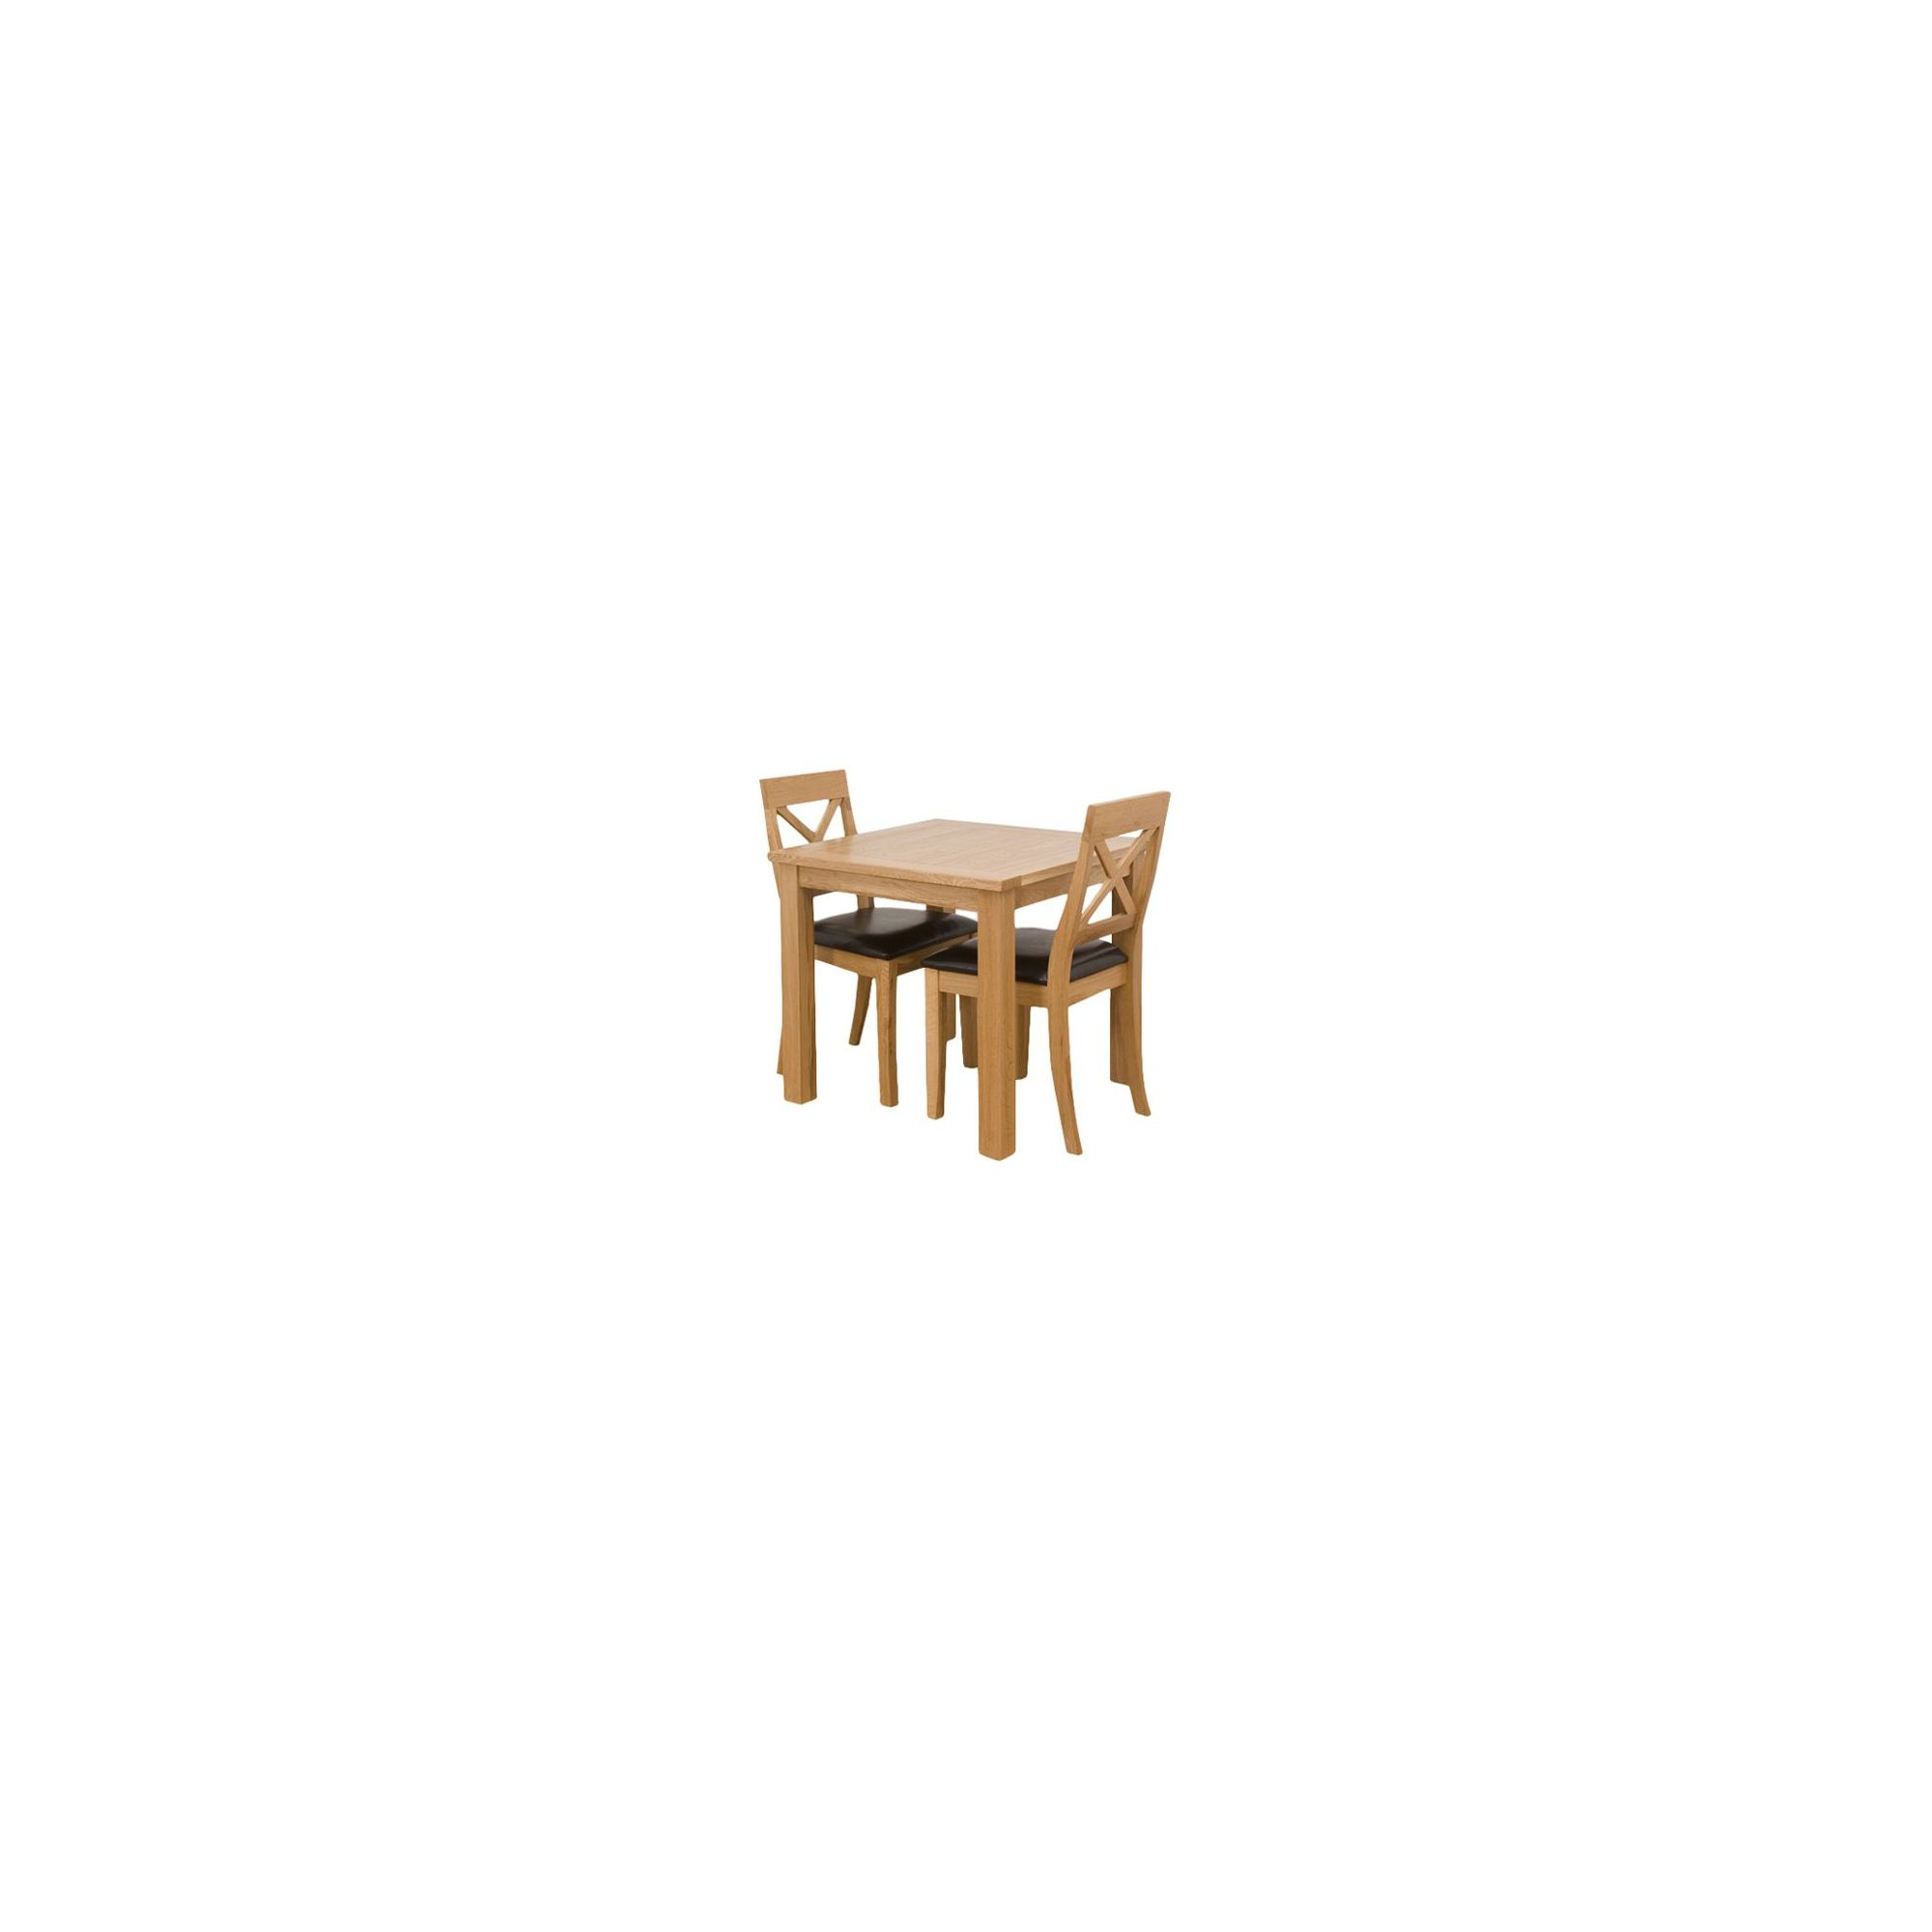 G&P Furniture 3 Piece Dining Set at Tesco Direct